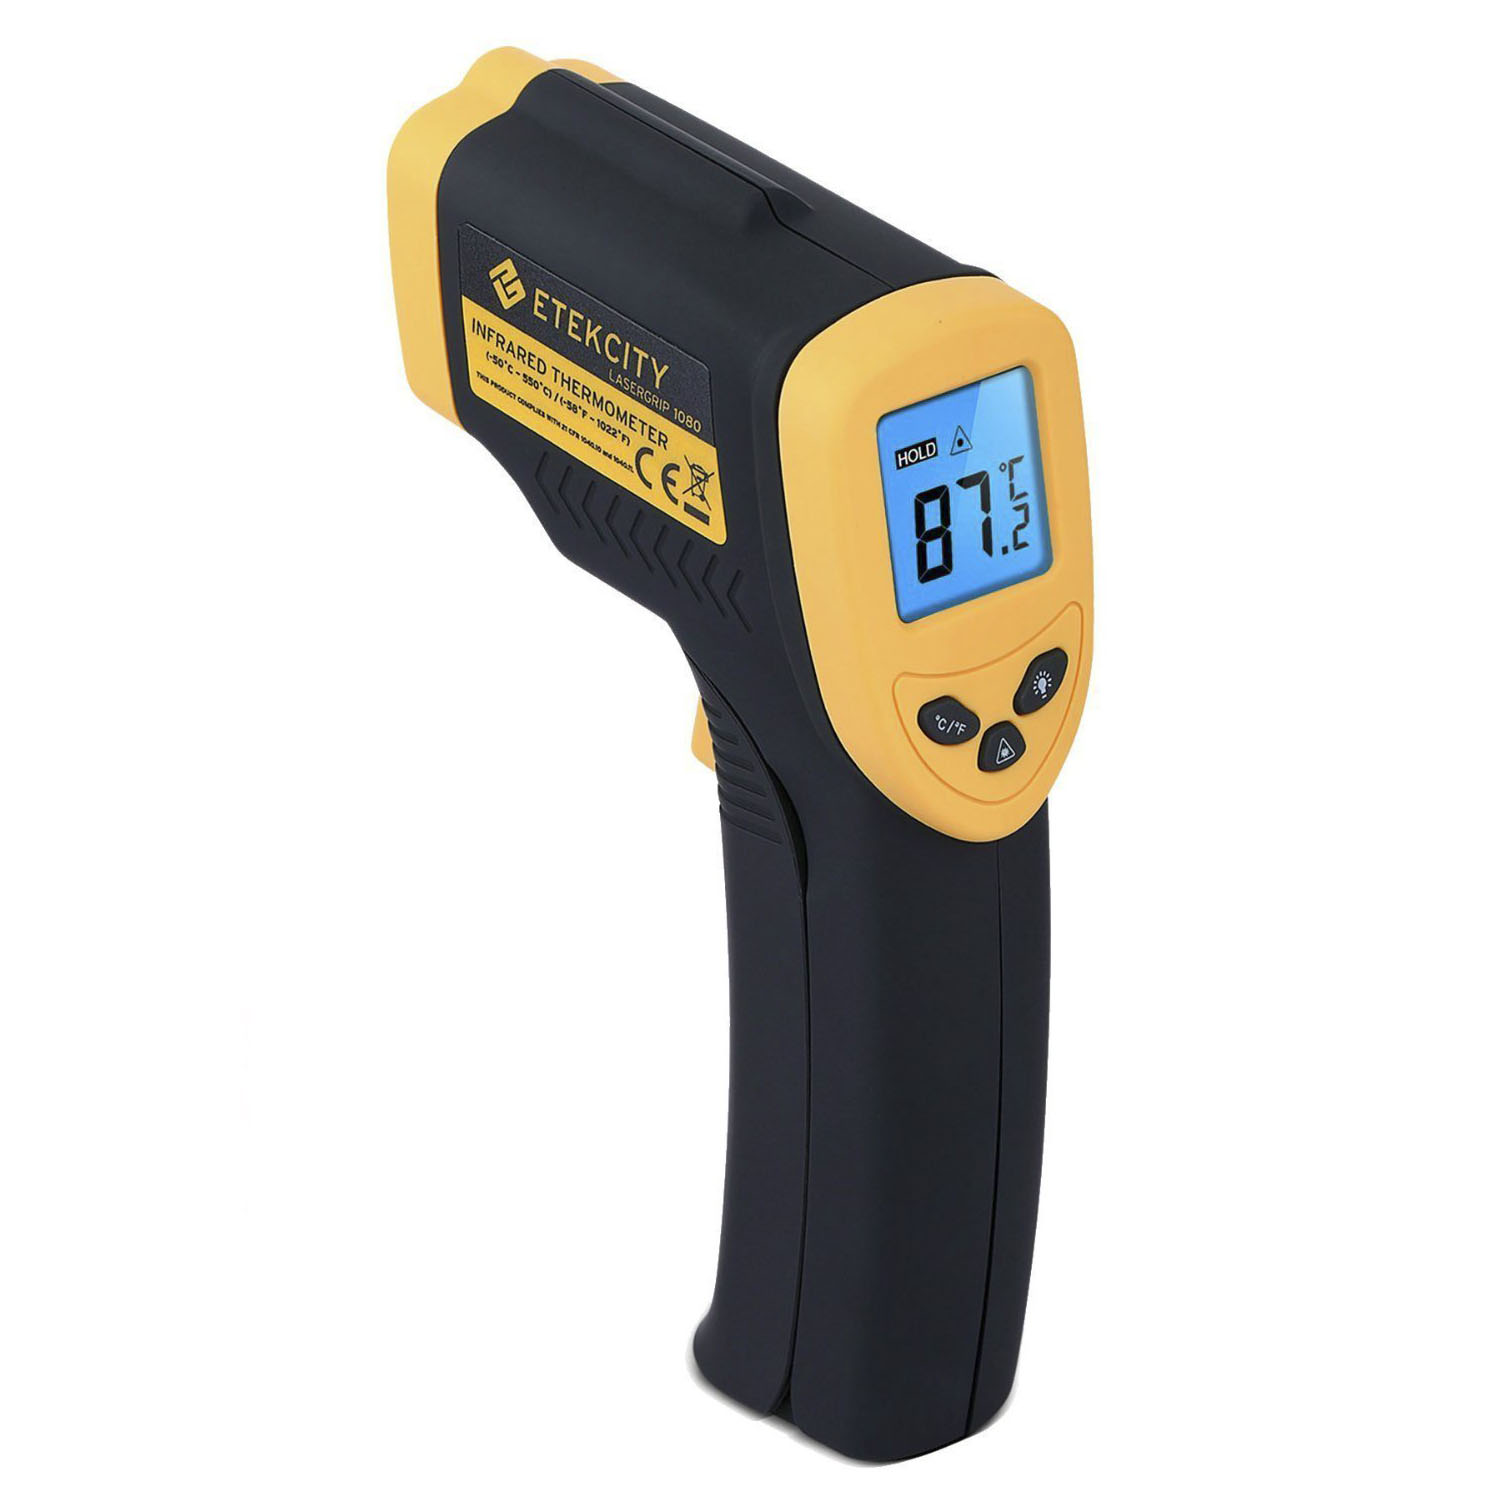 Etekcity Lasergrip 1080 Non-contact Digital Infrared Laser Thermometer